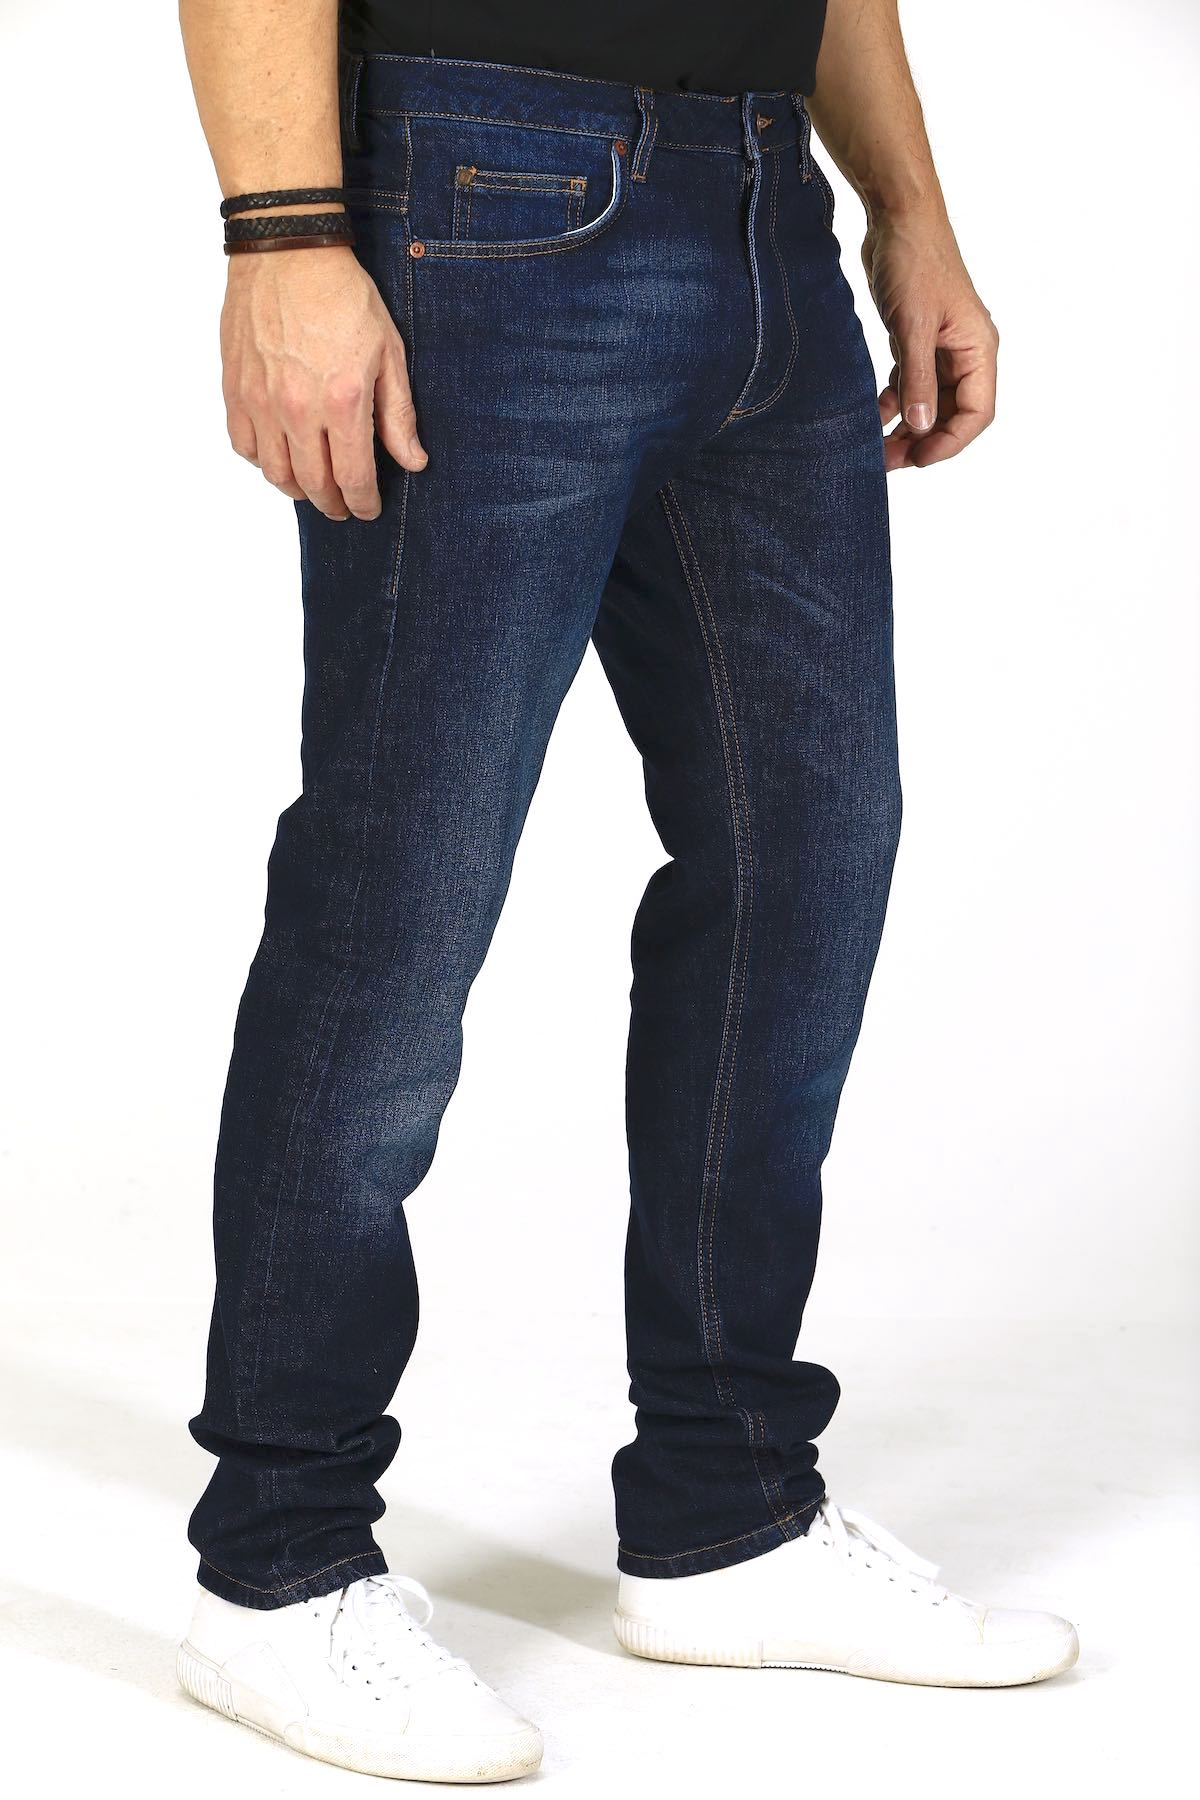 Slim Fit - Dark Indigo Herren-Jeans